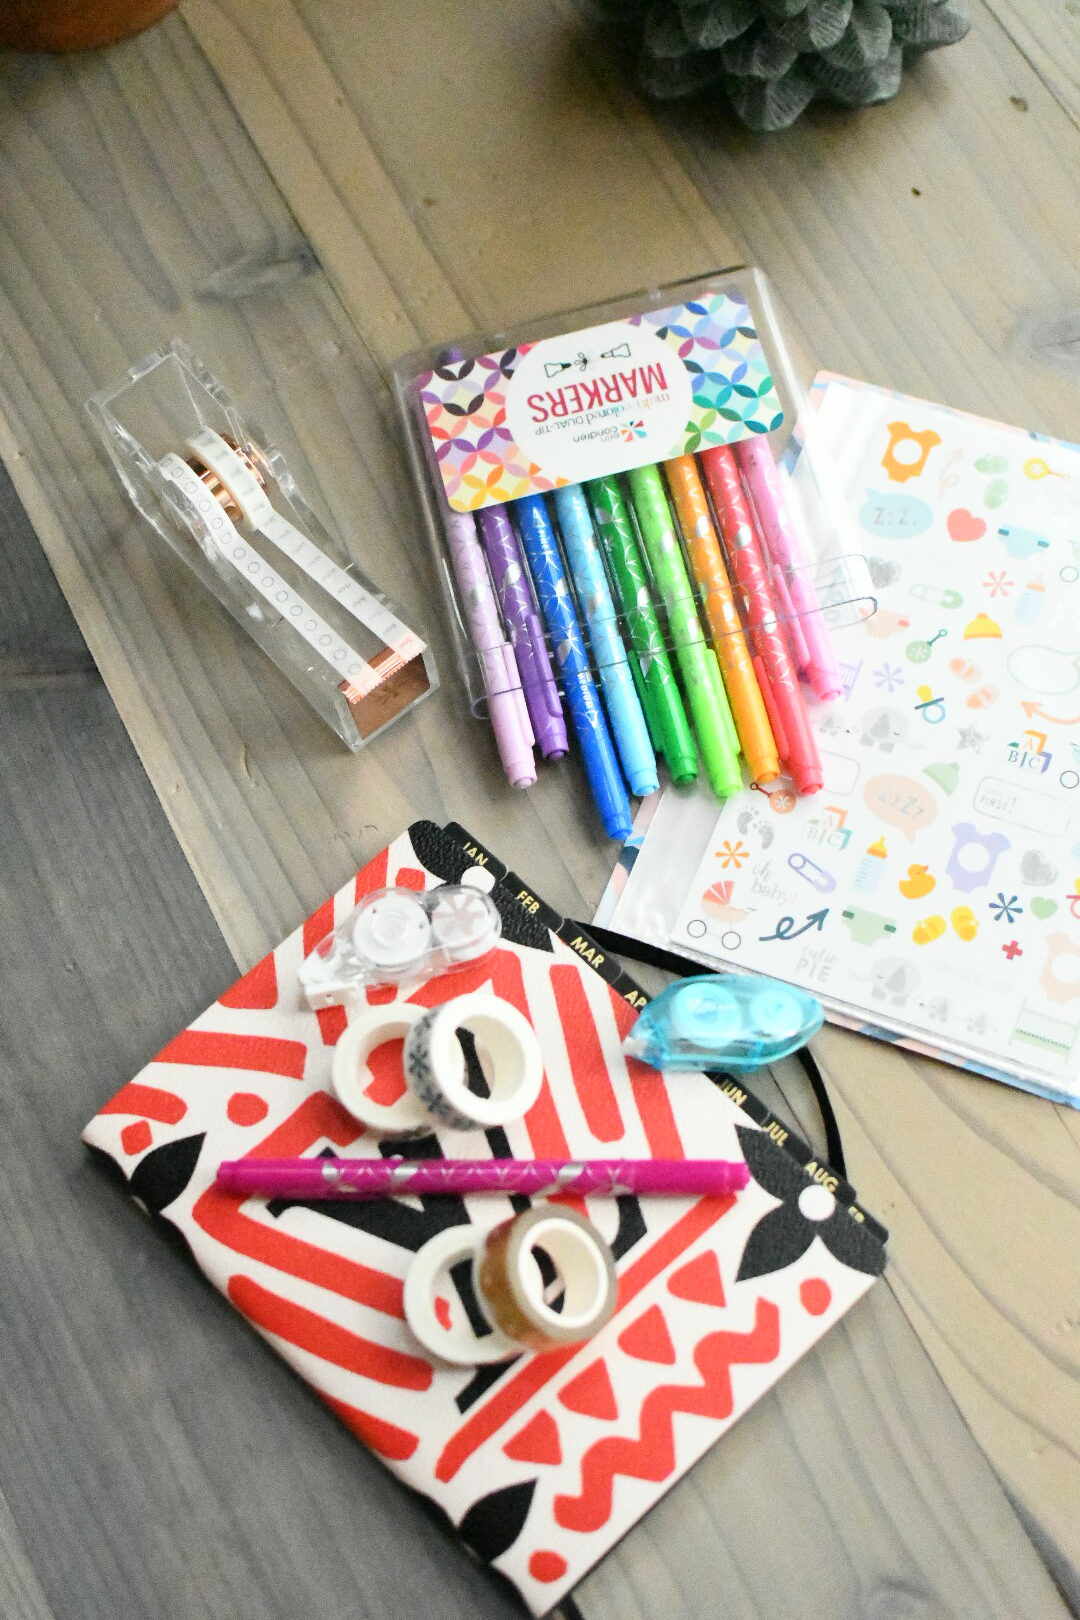 Erin Condren Black Friday Sale by popular Monterey lifestyle blog, Haute Beauty Guide: image of washi tape, markers, stickers, and white out tape.